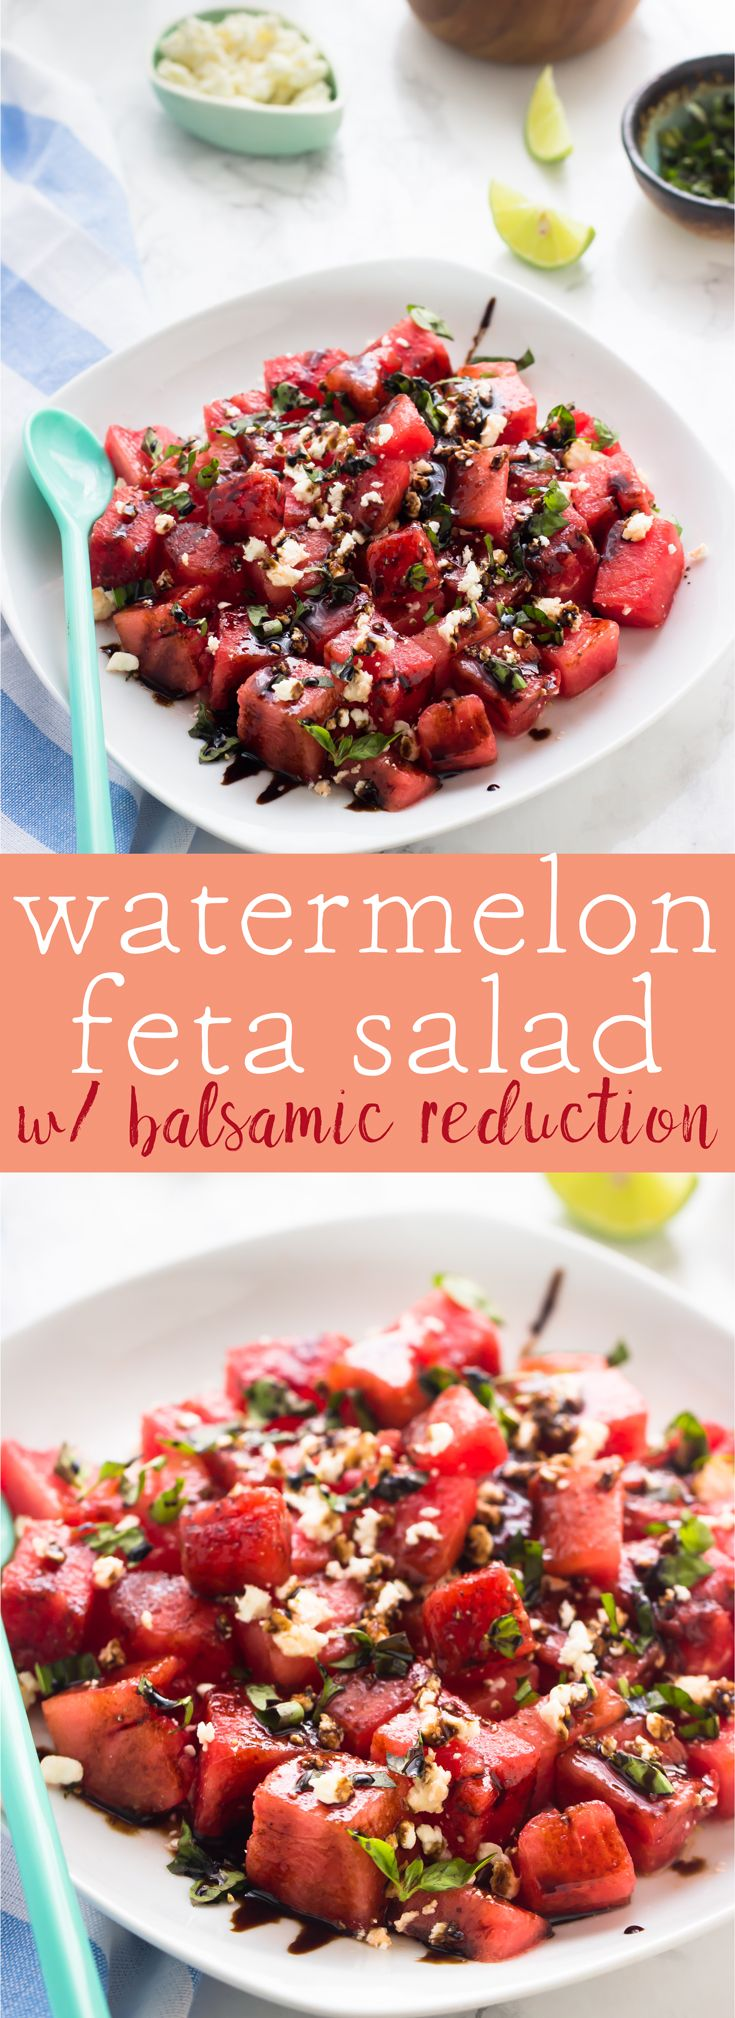 This Watermelon Feta Salad is fresh, juicy and drizzled with a delicious balsamic reduction. It's made in just 15 minutes! via http://jessicainthekitchen.com